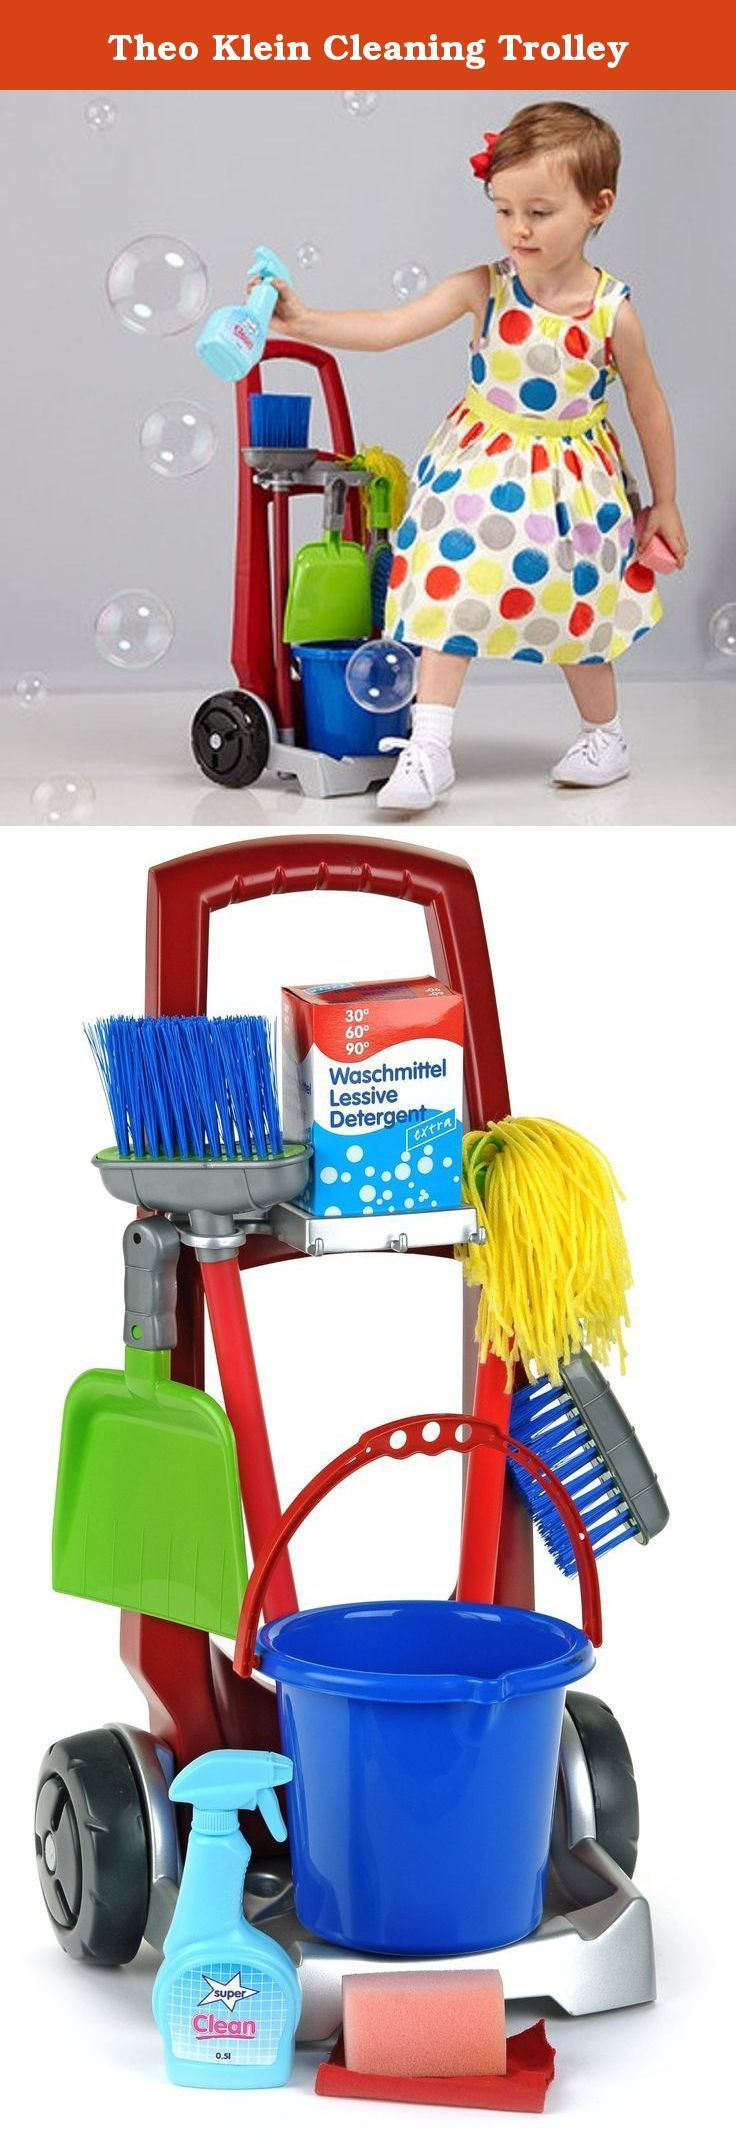 Theo Klein Cleaning Trolley. Child size Cleaning Trolley comes on wheels with bucket, mop, broom, hand broom and pail, sponge, cloth and more.